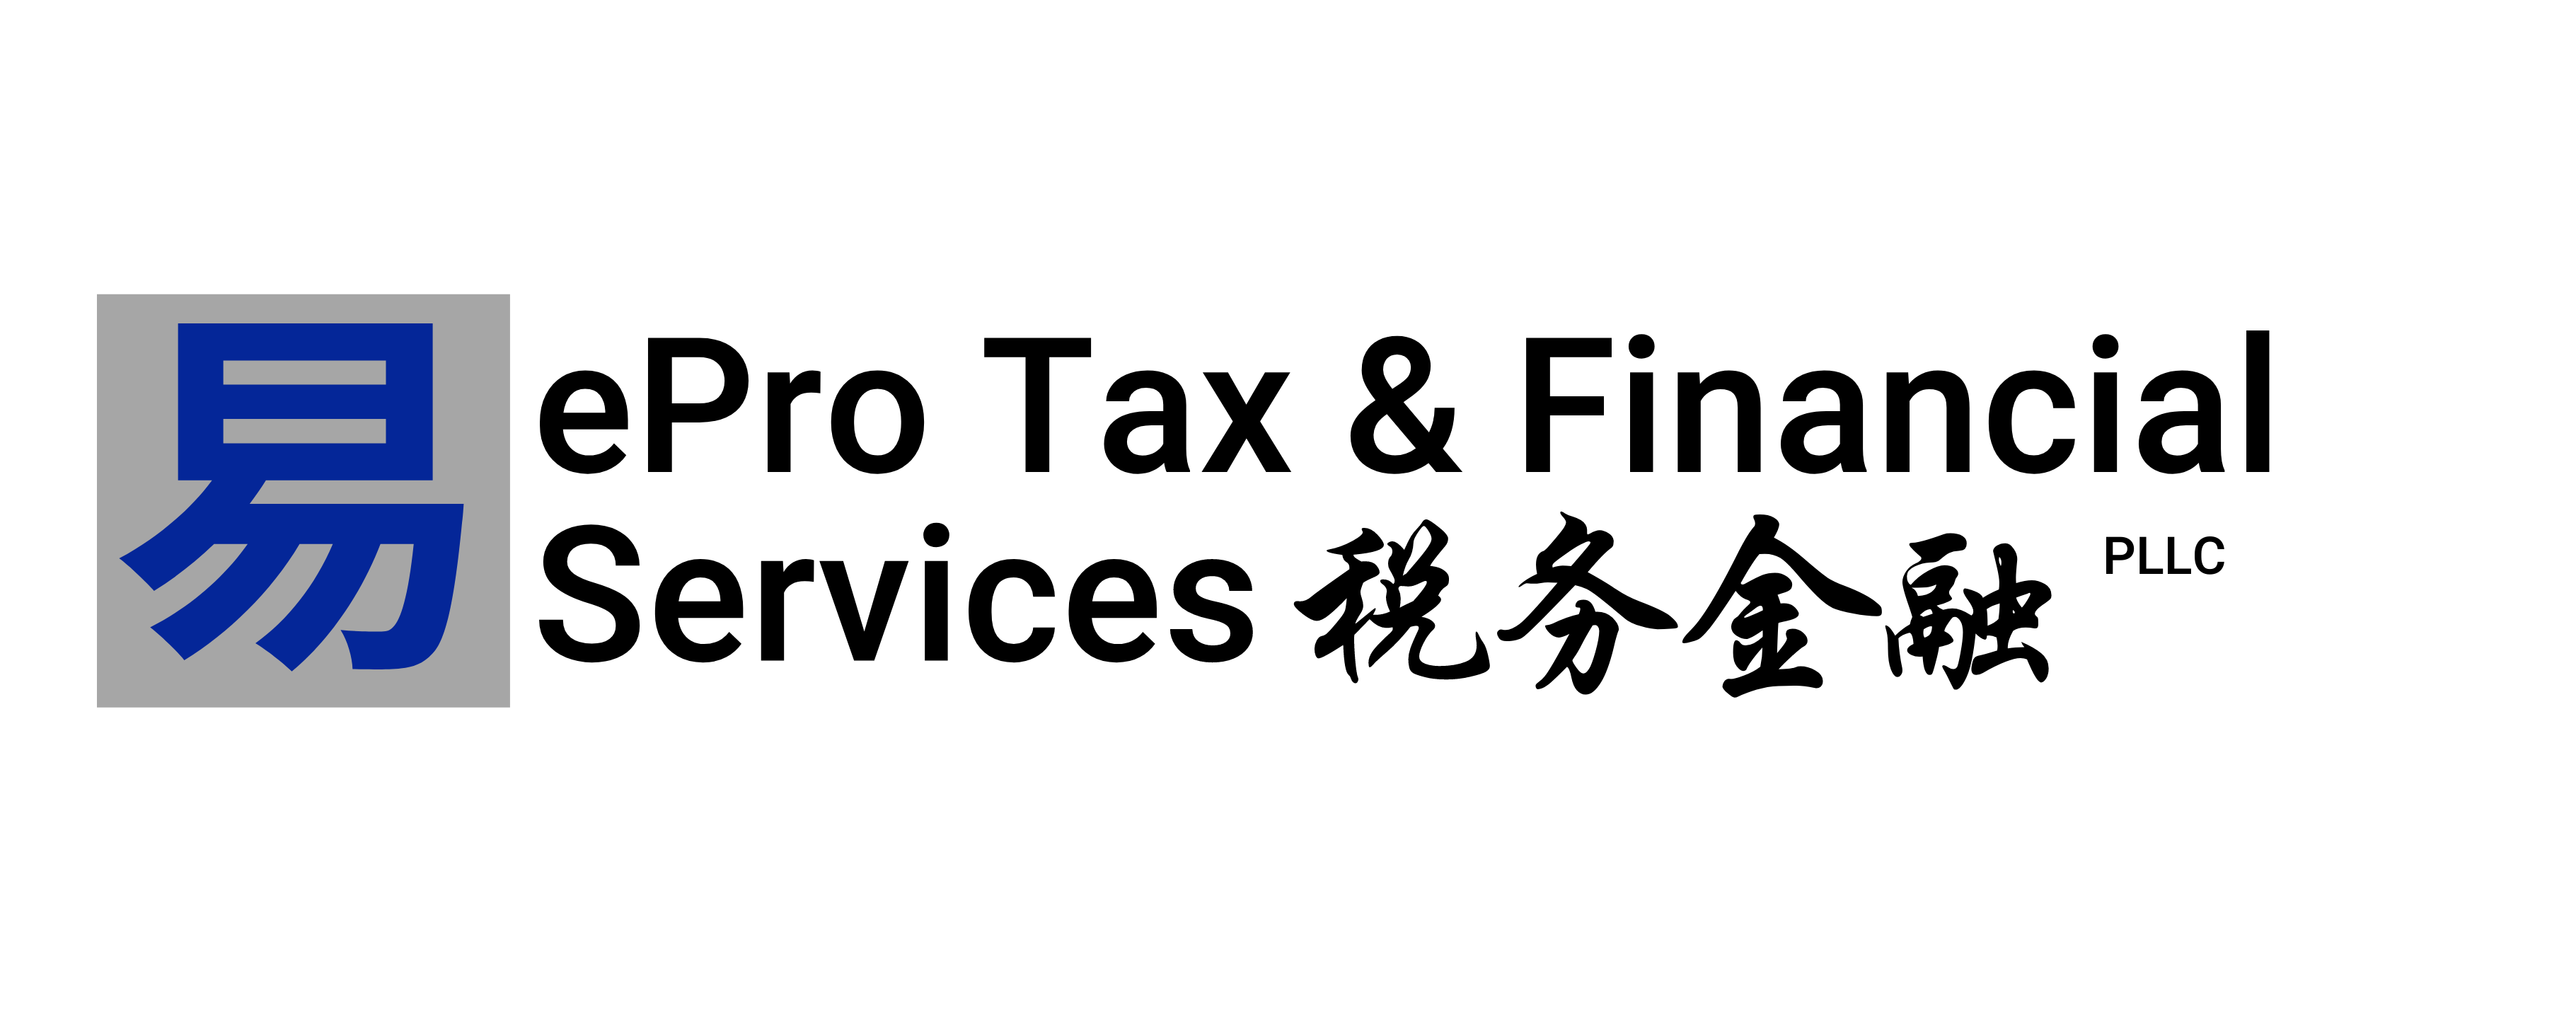 ePro Tax and Financial Services